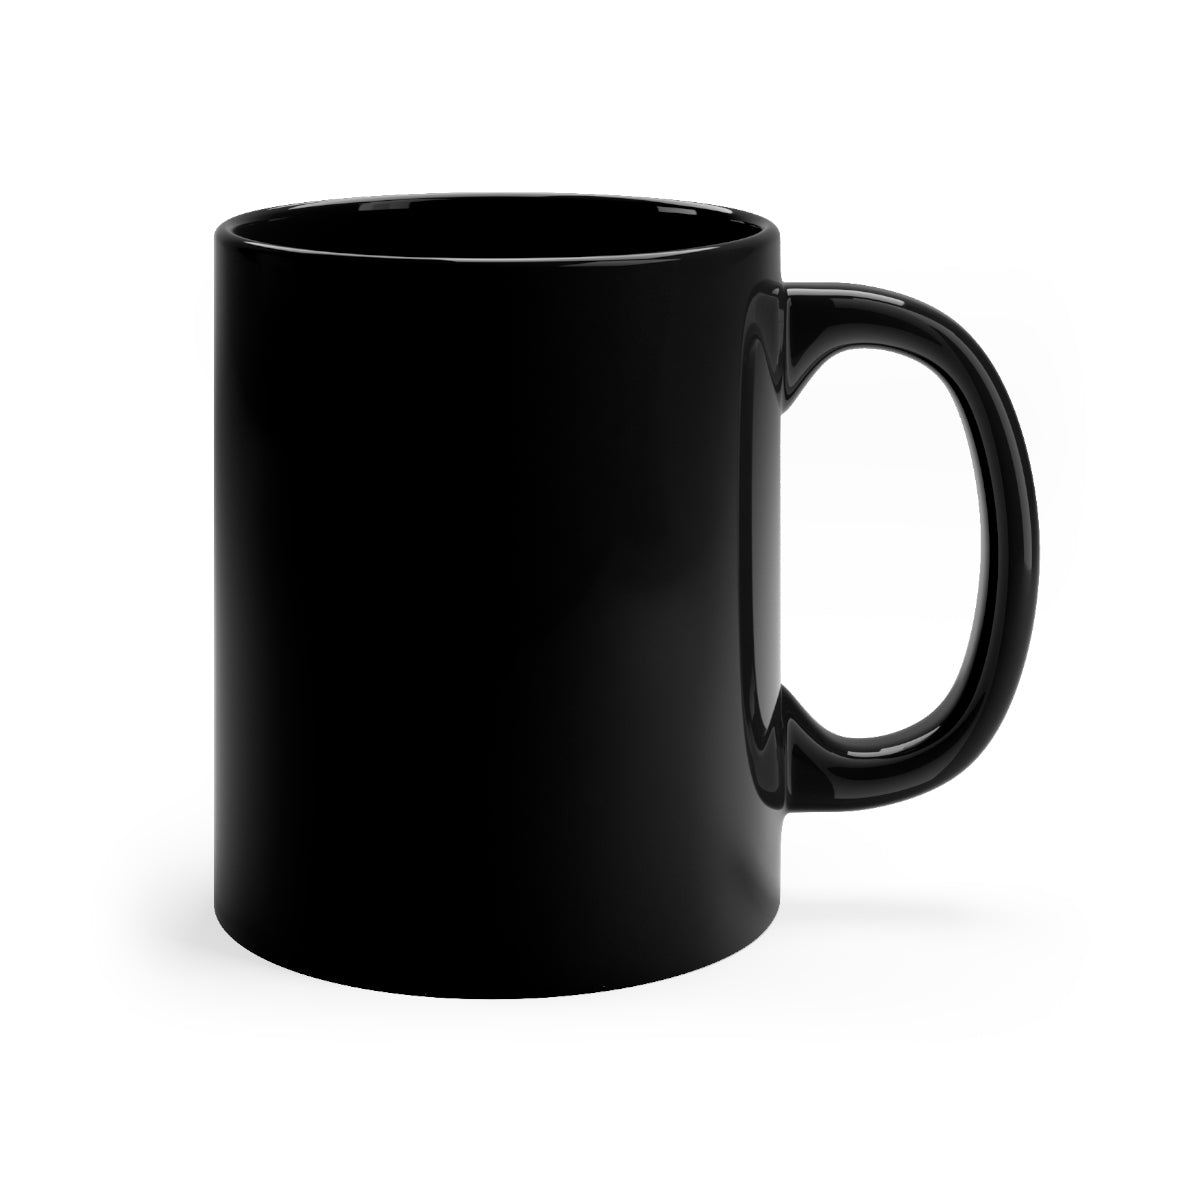 God Loves You Black mug 11oz